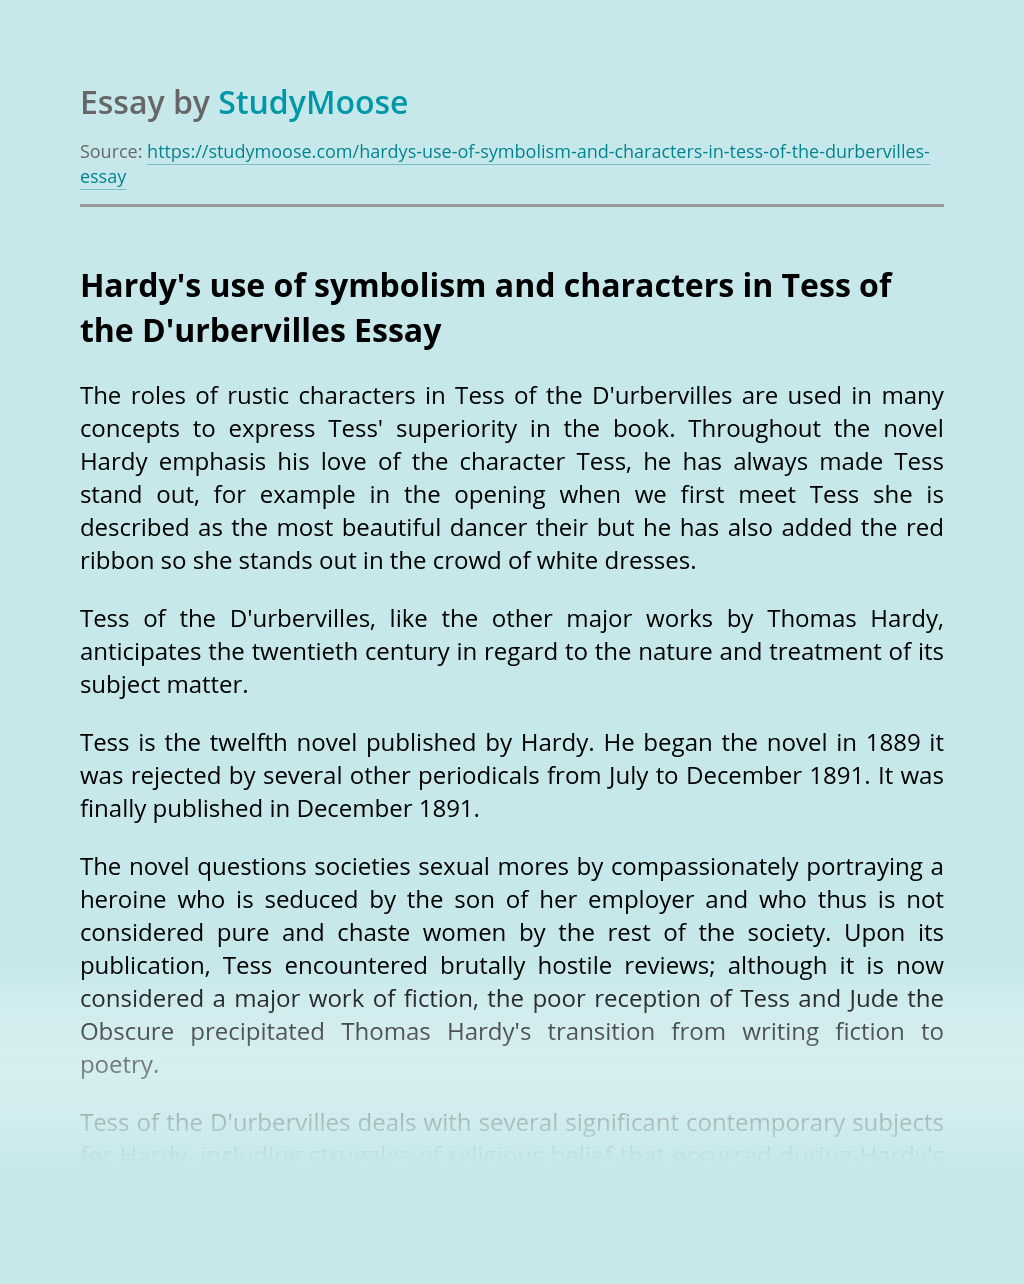 Hardy's use of symbolism and  characters in Tess of the D'urbervilles